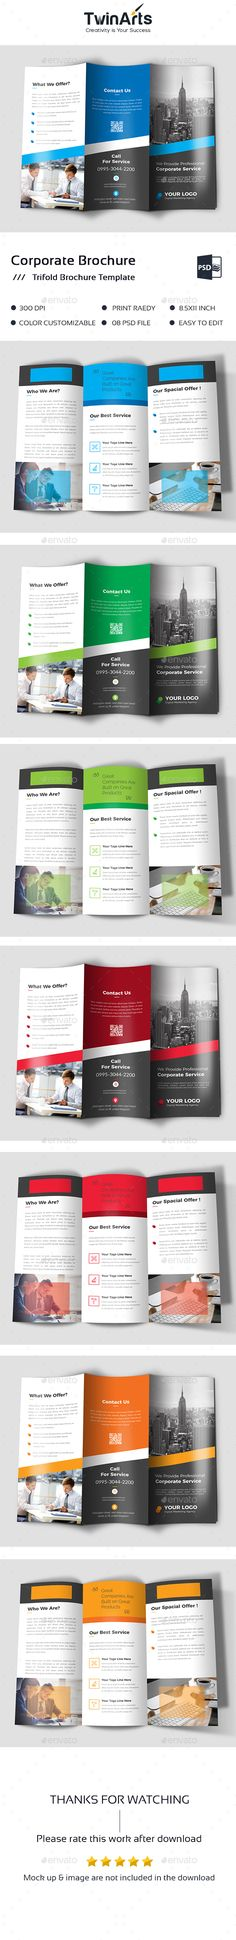 Trifold Brochure — Photoshop PSD #customisable #brochure • Available here → https://graphicriver.net/item/trifold-brochure/19813841?ref=pxcr